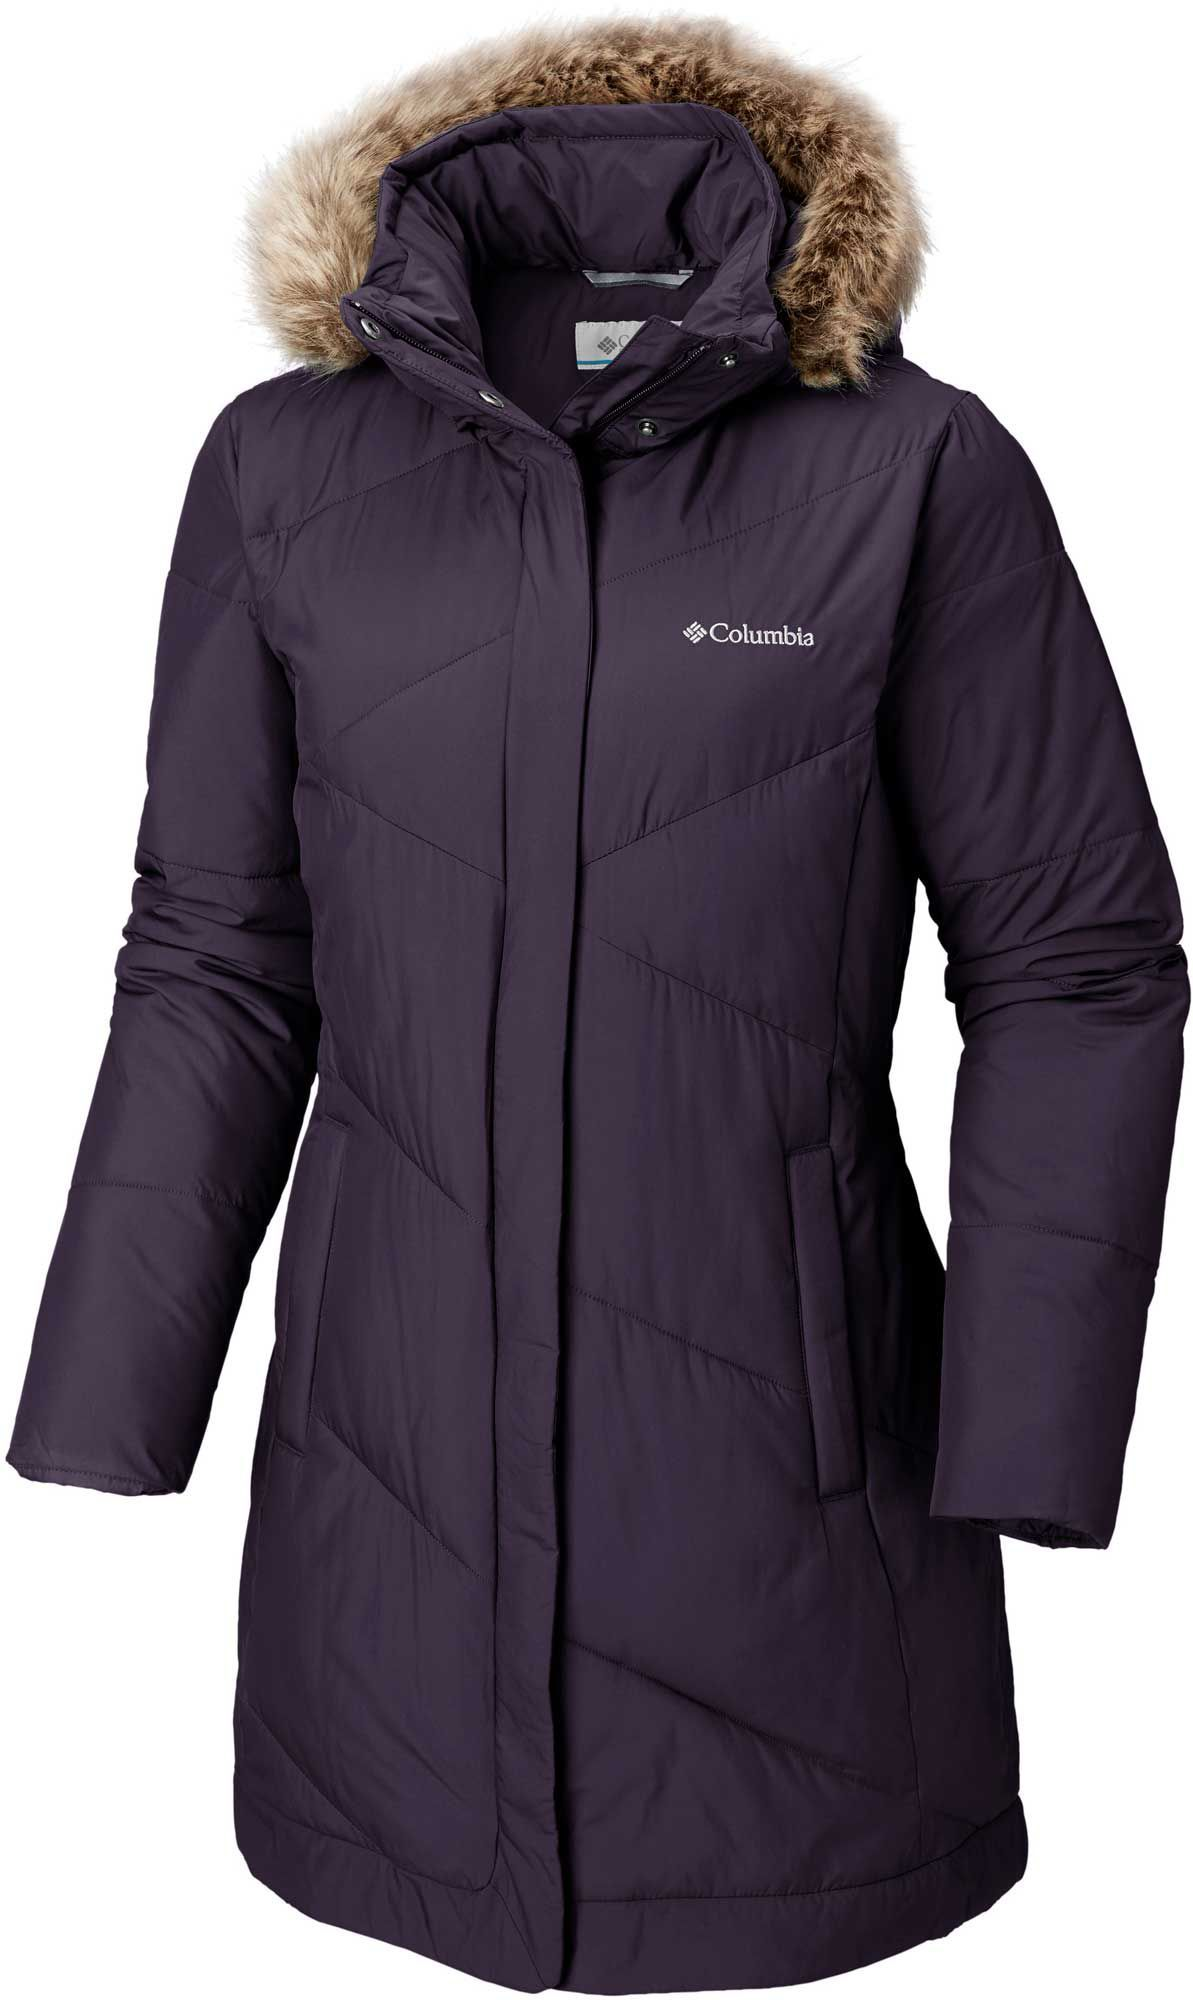 Columbia Women's Snow Eclipse Mid Insulated Jacket | Jackets